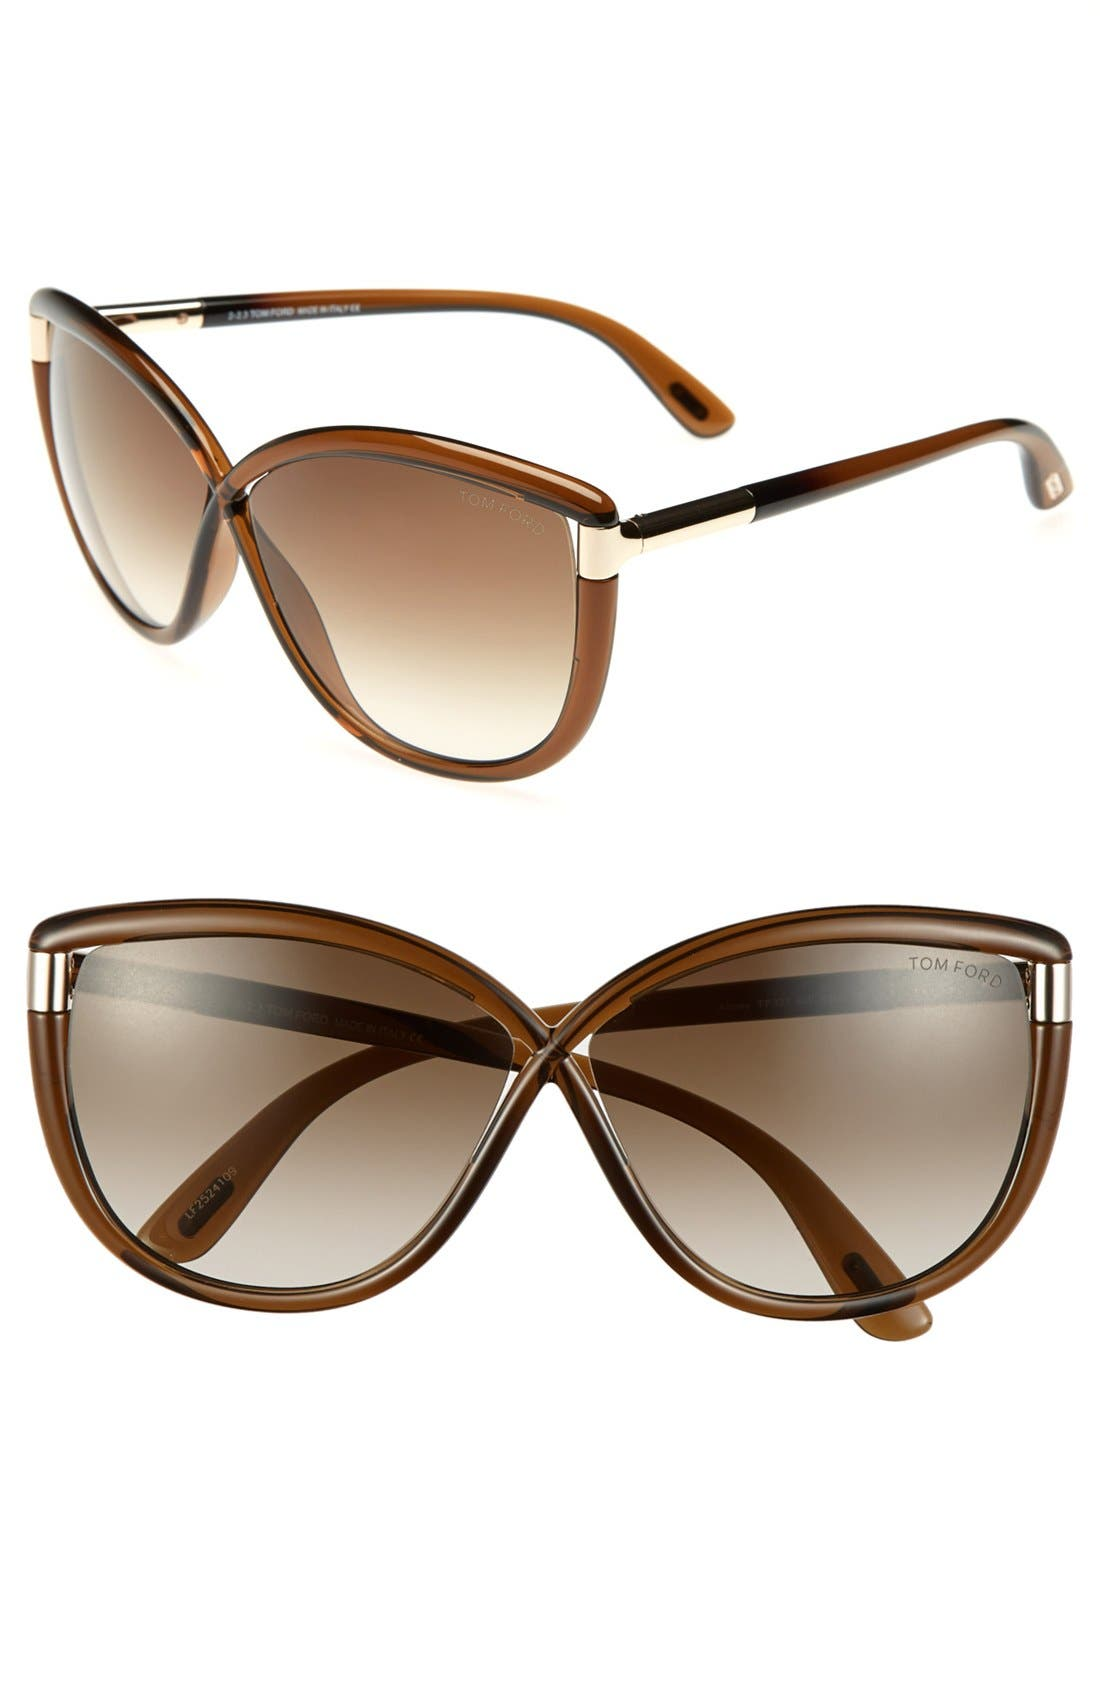 Alternate Image 1 Selected - Tom Ford 'Abbey' 63mm Oversized Sunglasses